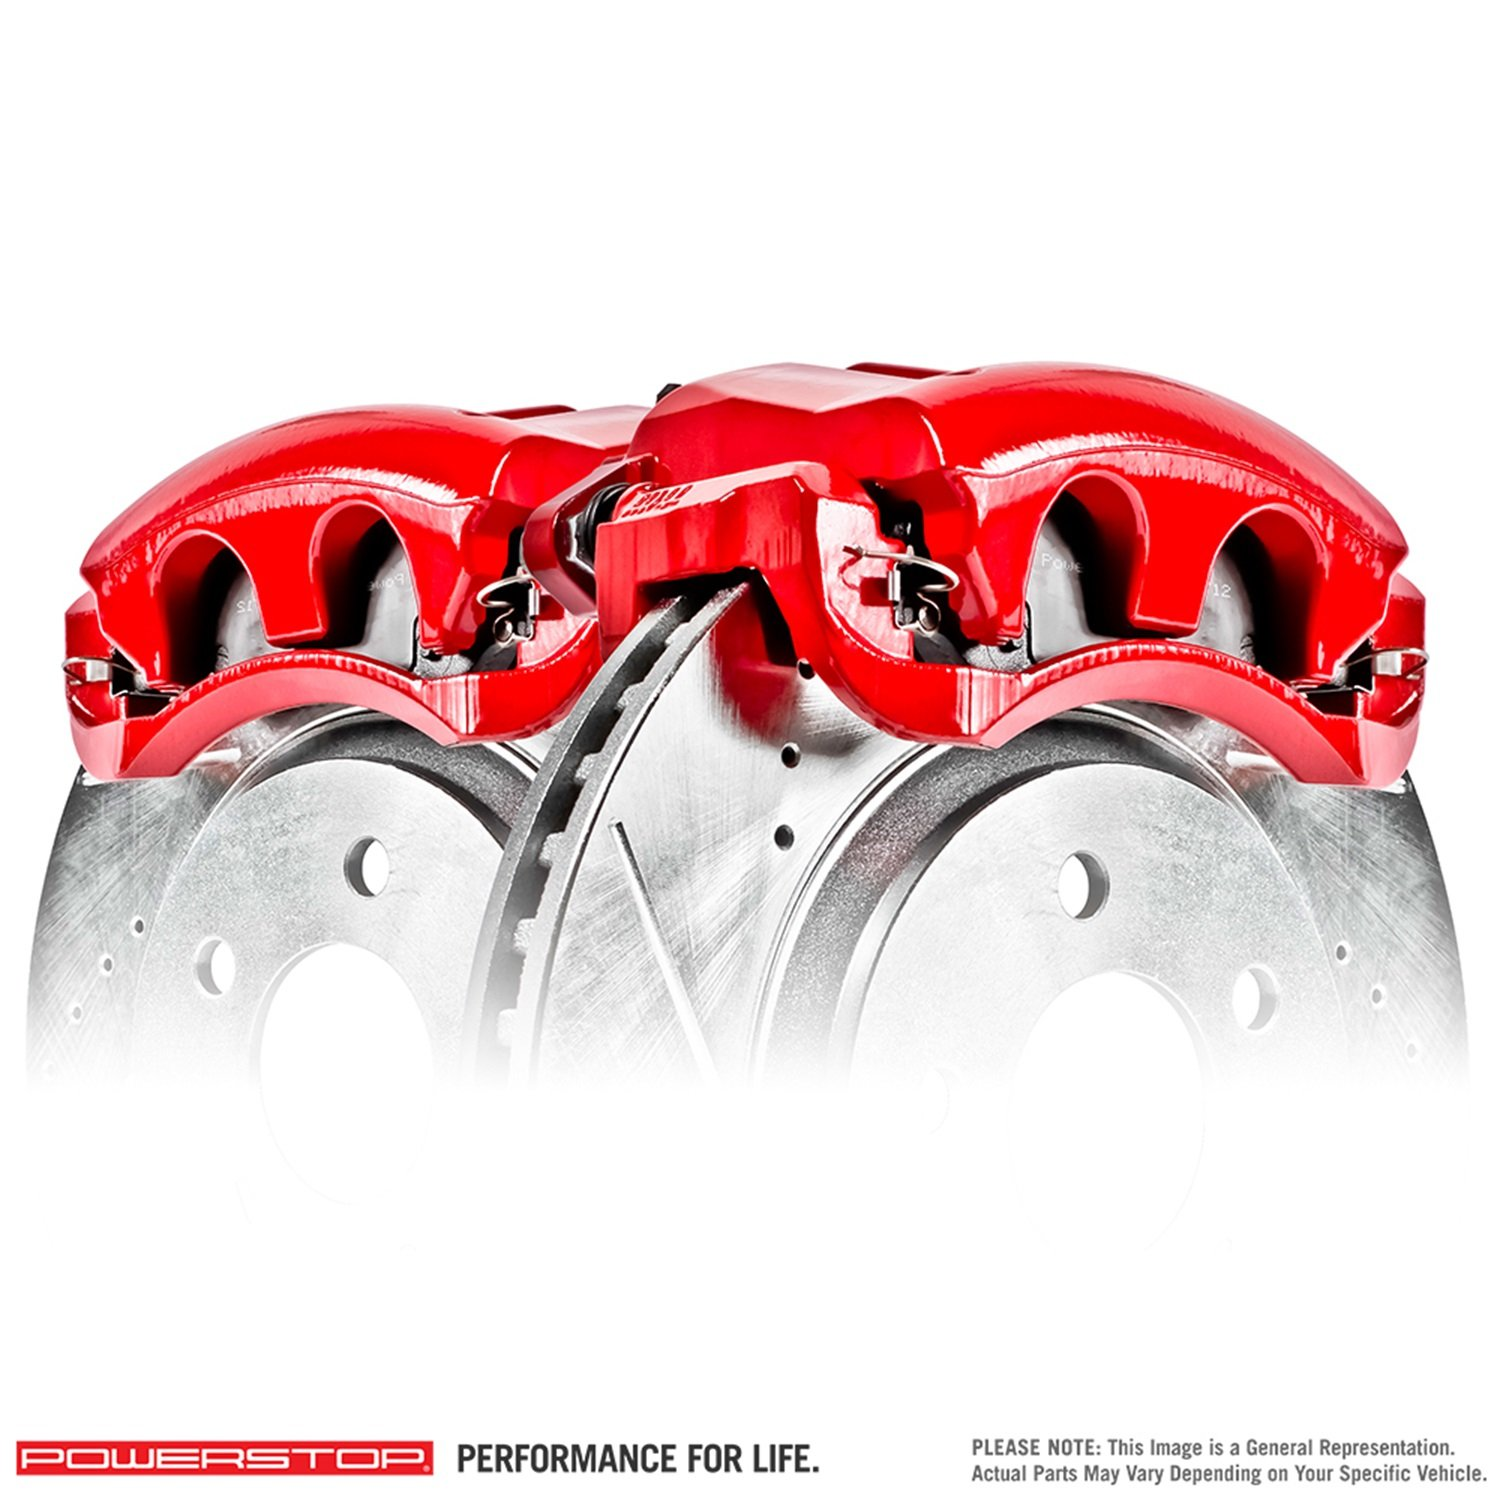 Power Stop S2998 Performance Brake Calipers w/Brackets Pair Performance Brake Calipers w/Brackets